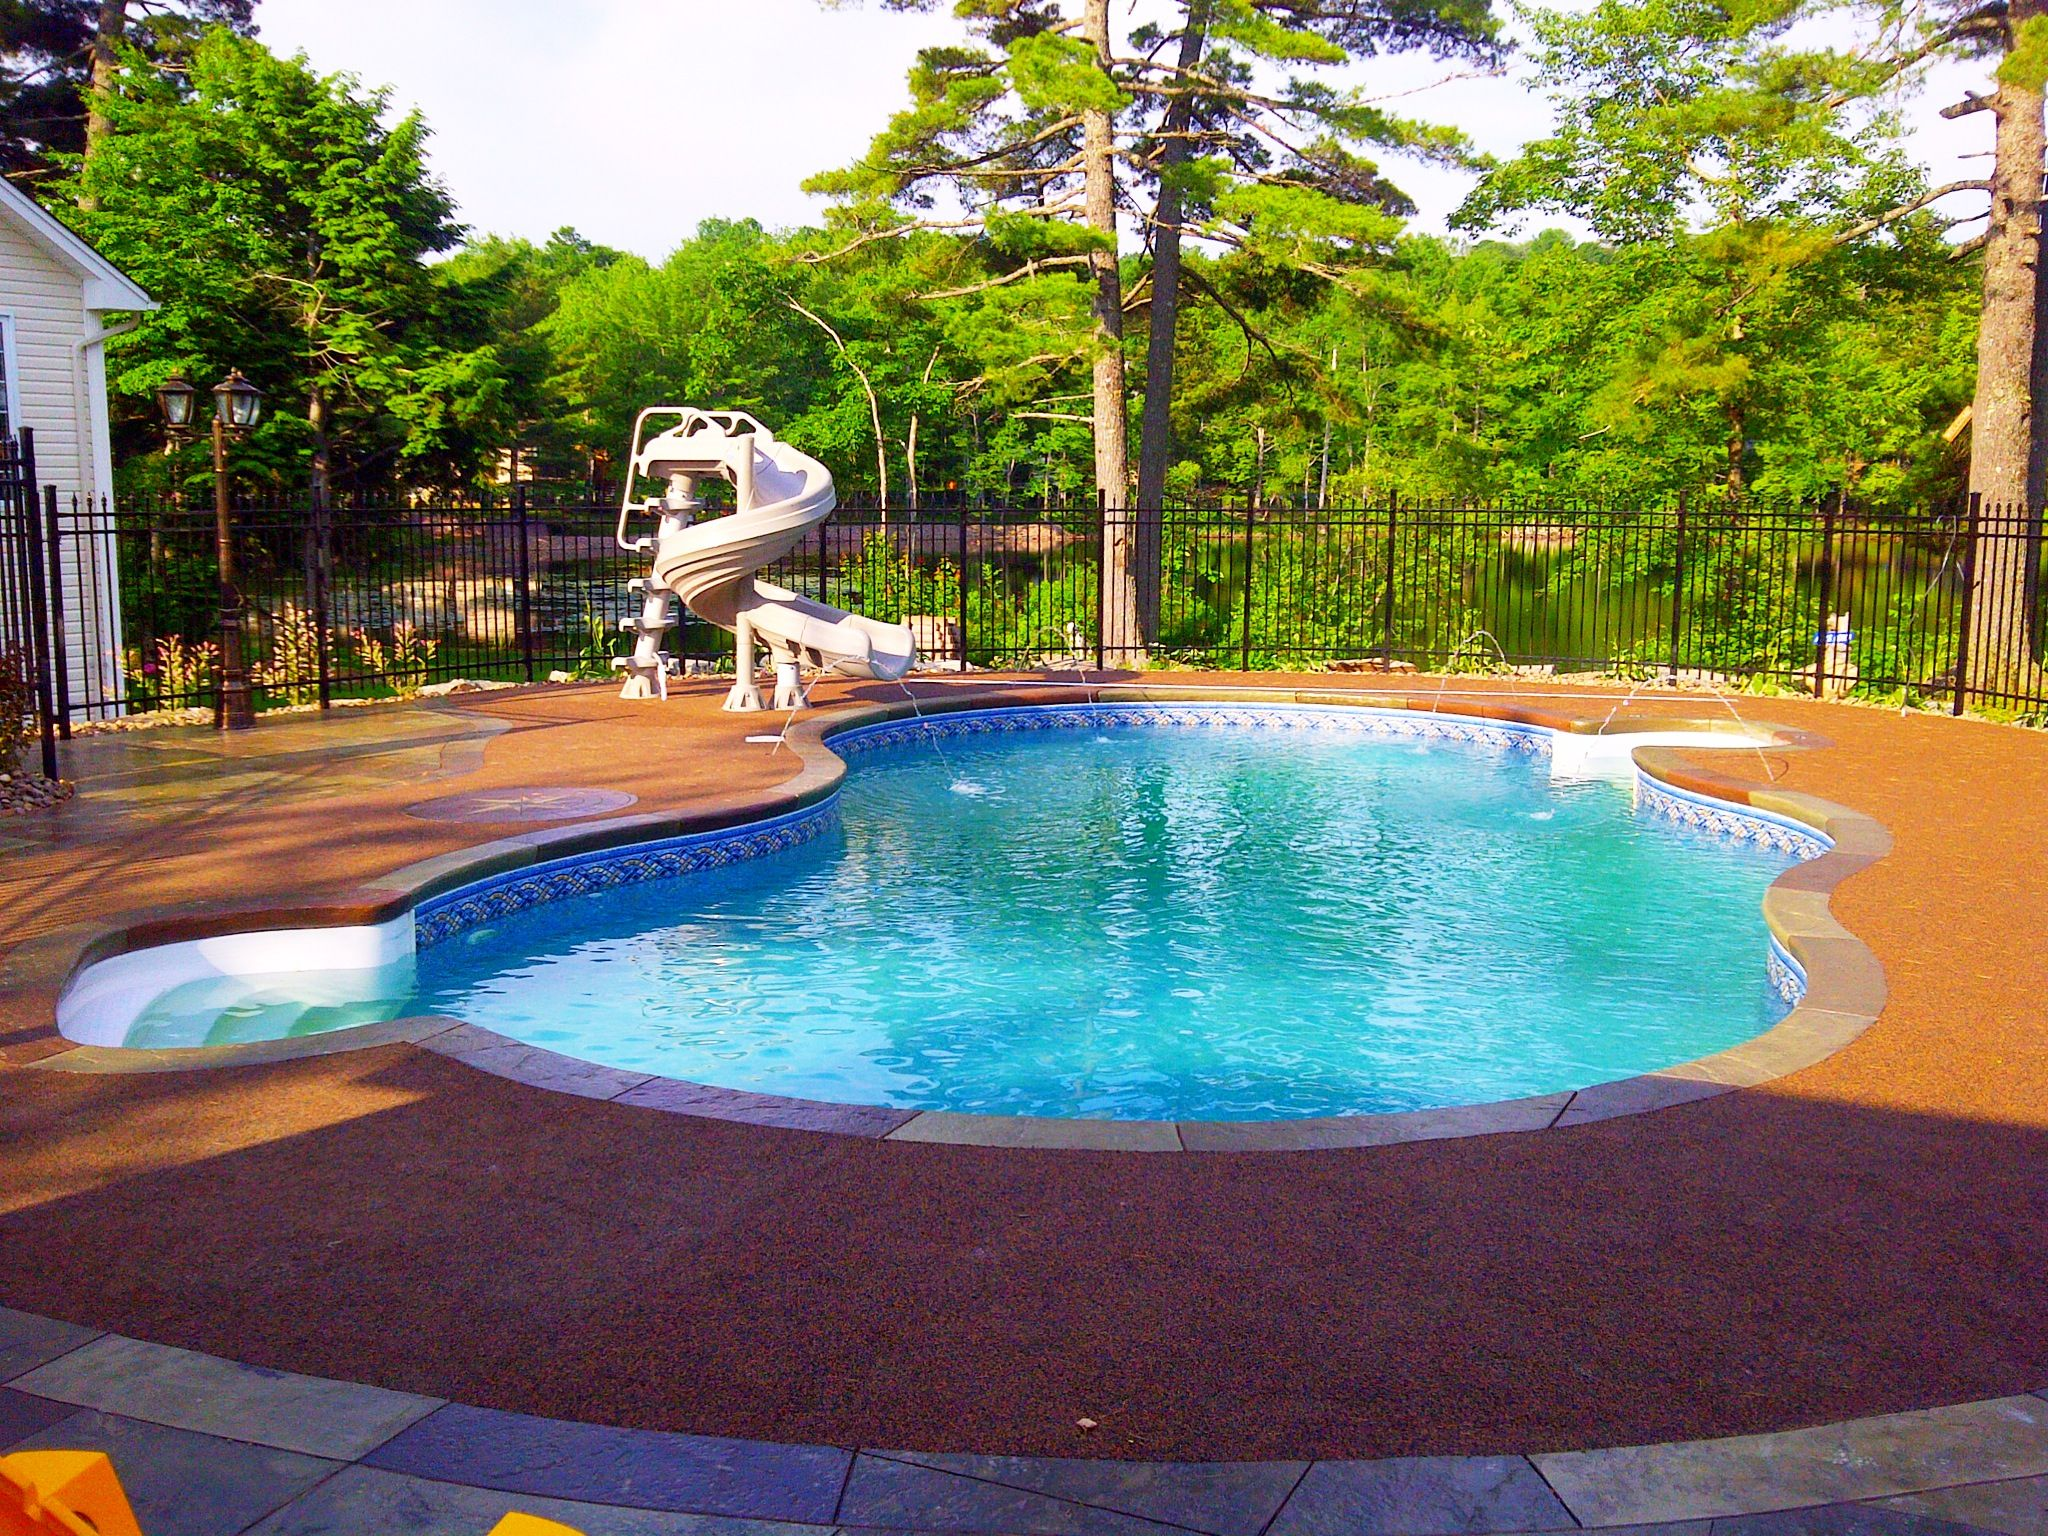 Inground Pools With Waterslides 32 best pool design images on pinterest | pool designs, swimming